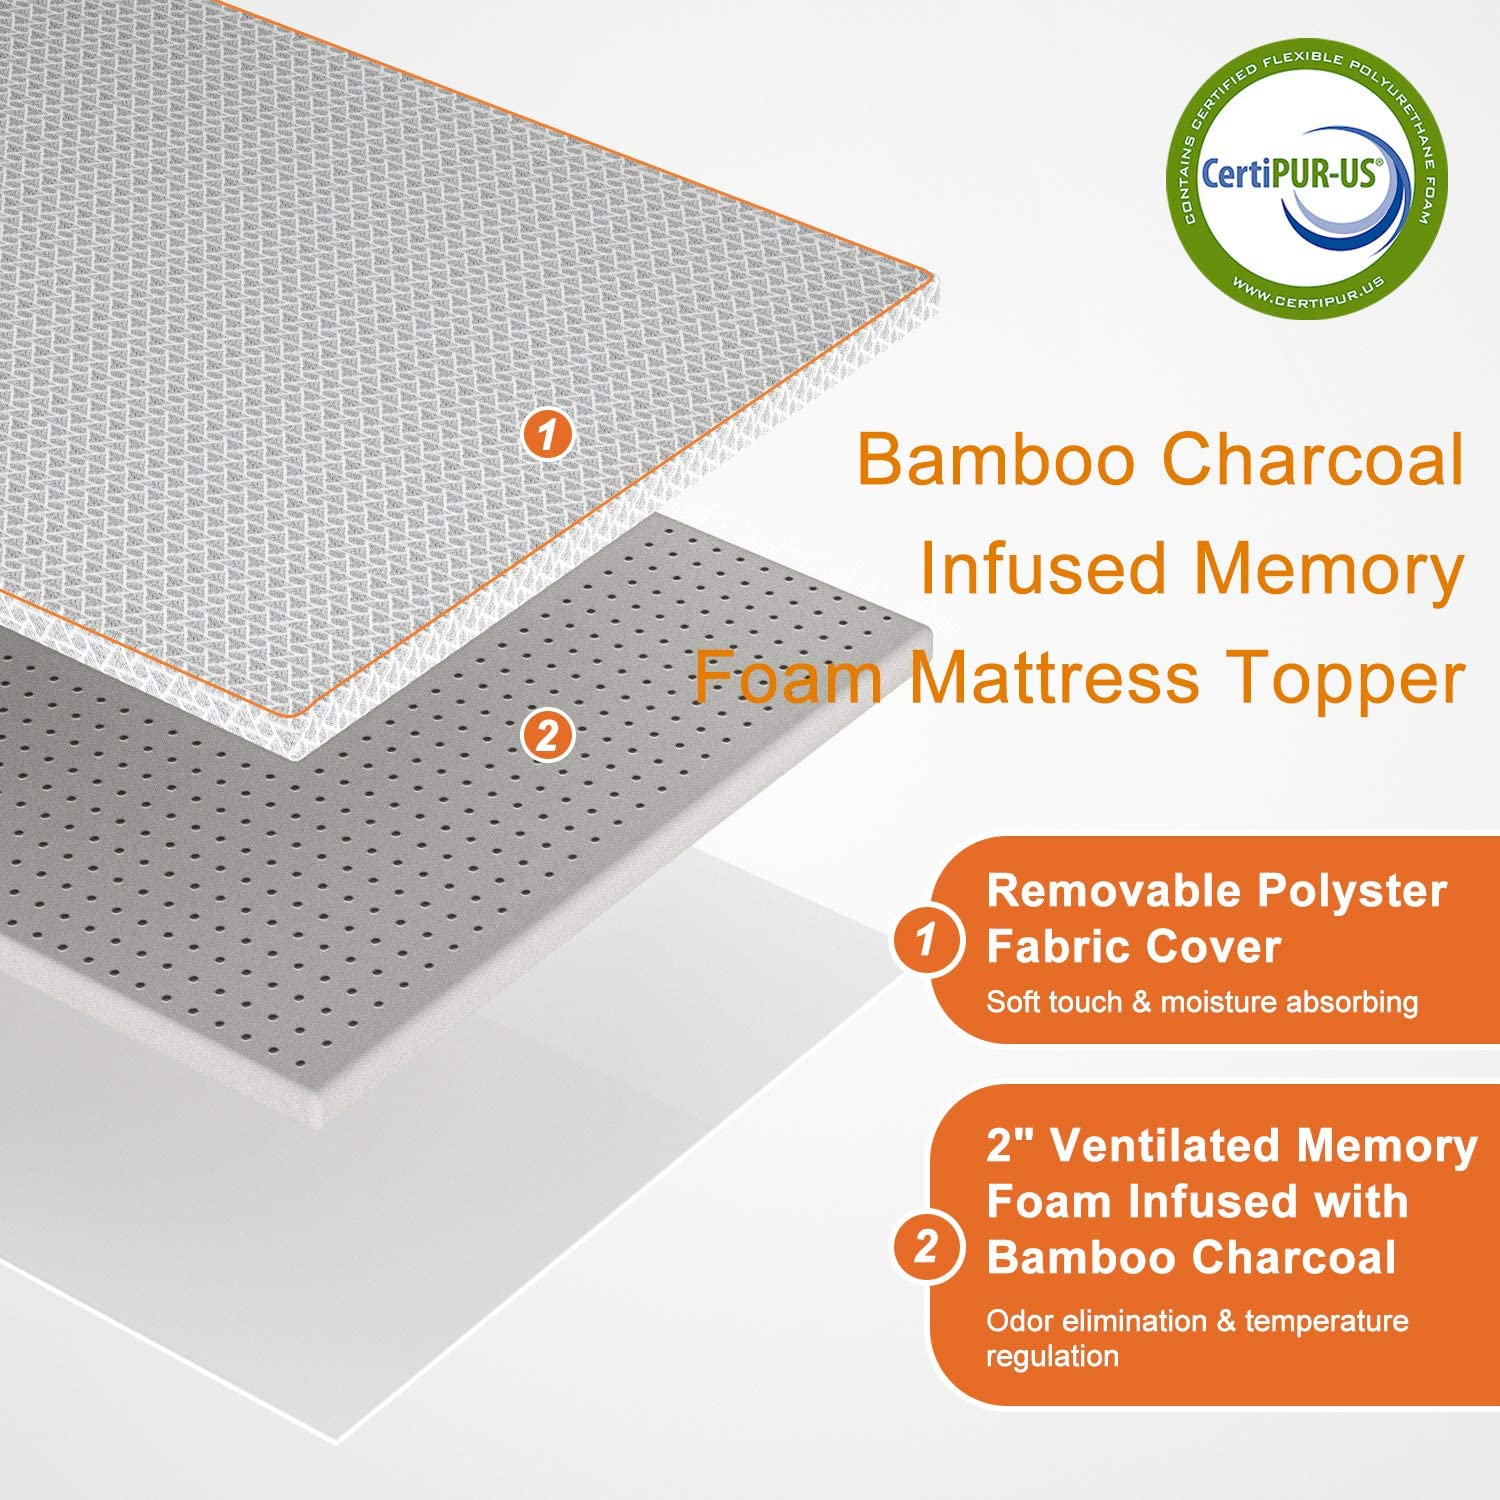 "Maxzzz 2"" Bamboo Charcoal Infused Memory Foam Mattress Topper, Hypoallergenic & Odor-Resistant Foam Toppers for Bed with Washable Cover, Ventilated & CertiPUR-US Certified Foam Bed Topper, Full Size: Kitchen & Dining"